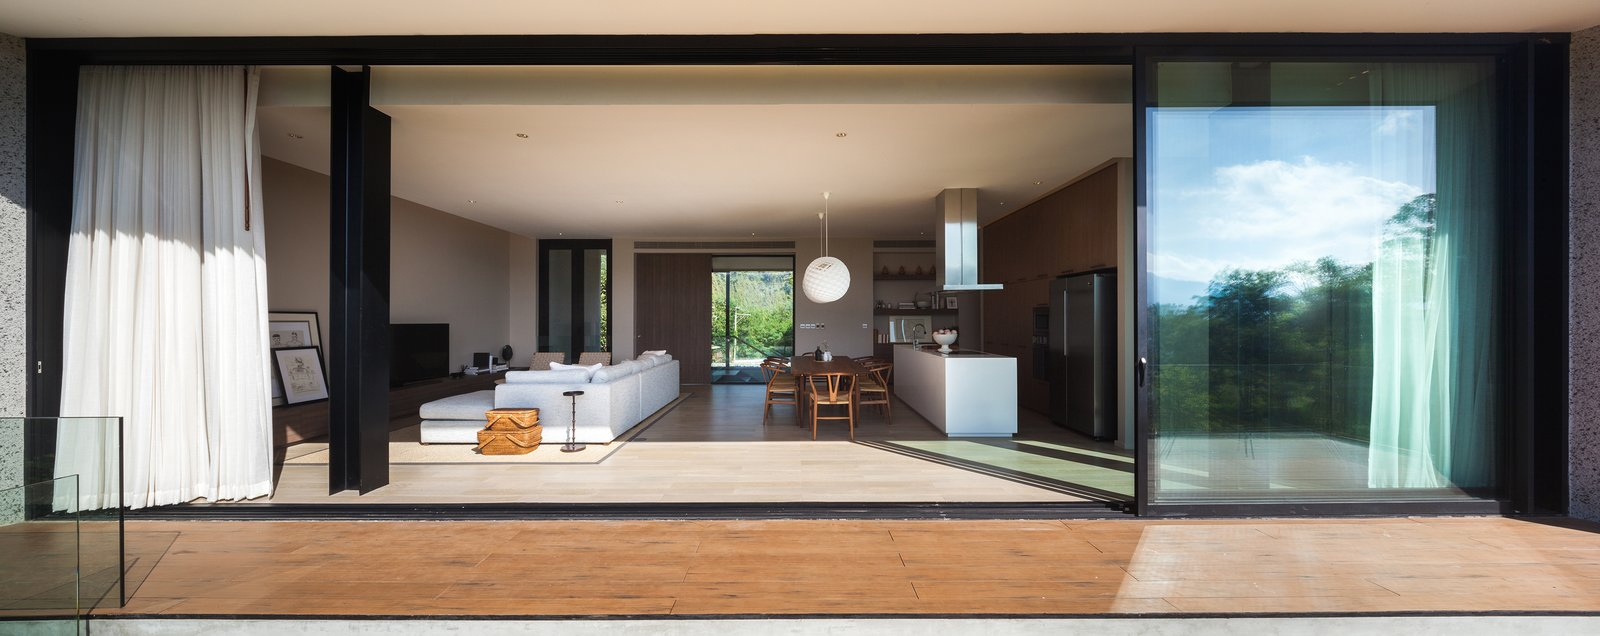 Akas Villa, Khaoyai by Black Pencils Studio